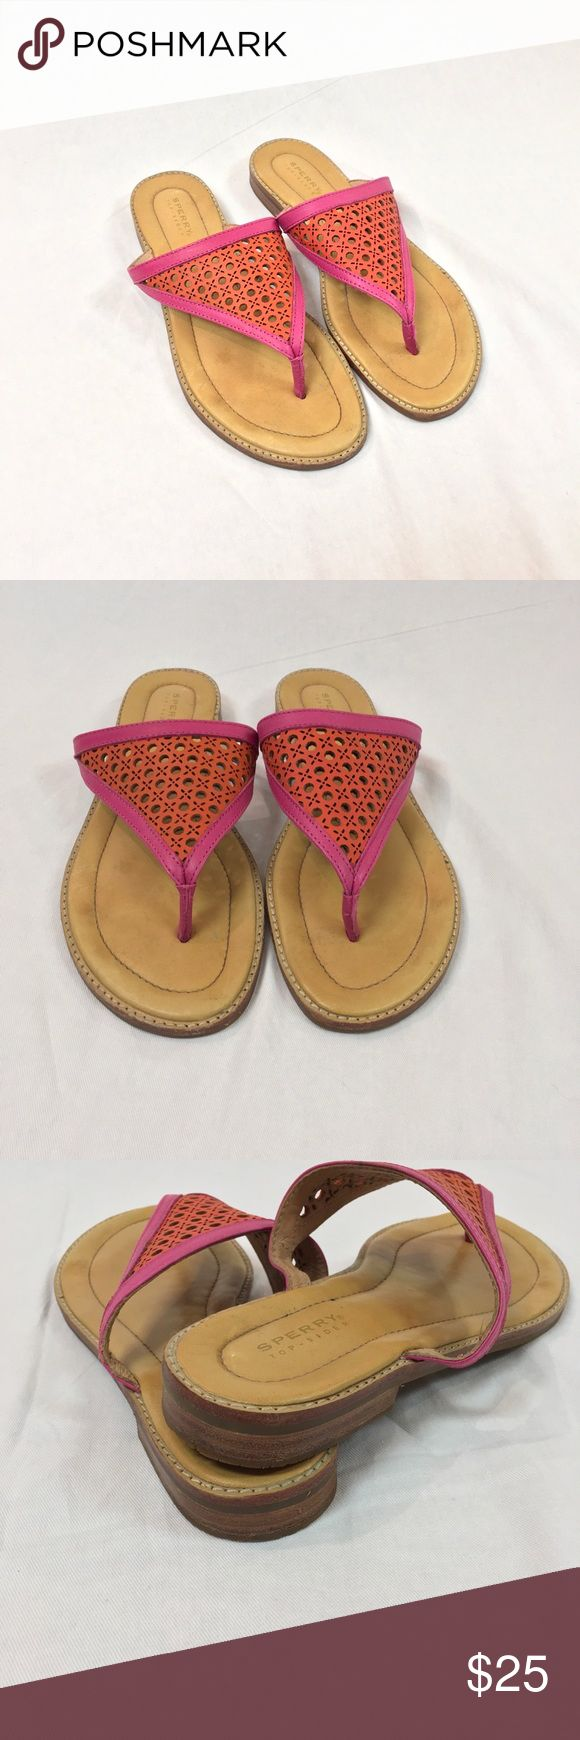 Sperry Sandals Super cute pink and orange sandals from Sperry! Good condition, some normal wear and leather darkening. Women's size 7.5. Sperry Shoes Sandals